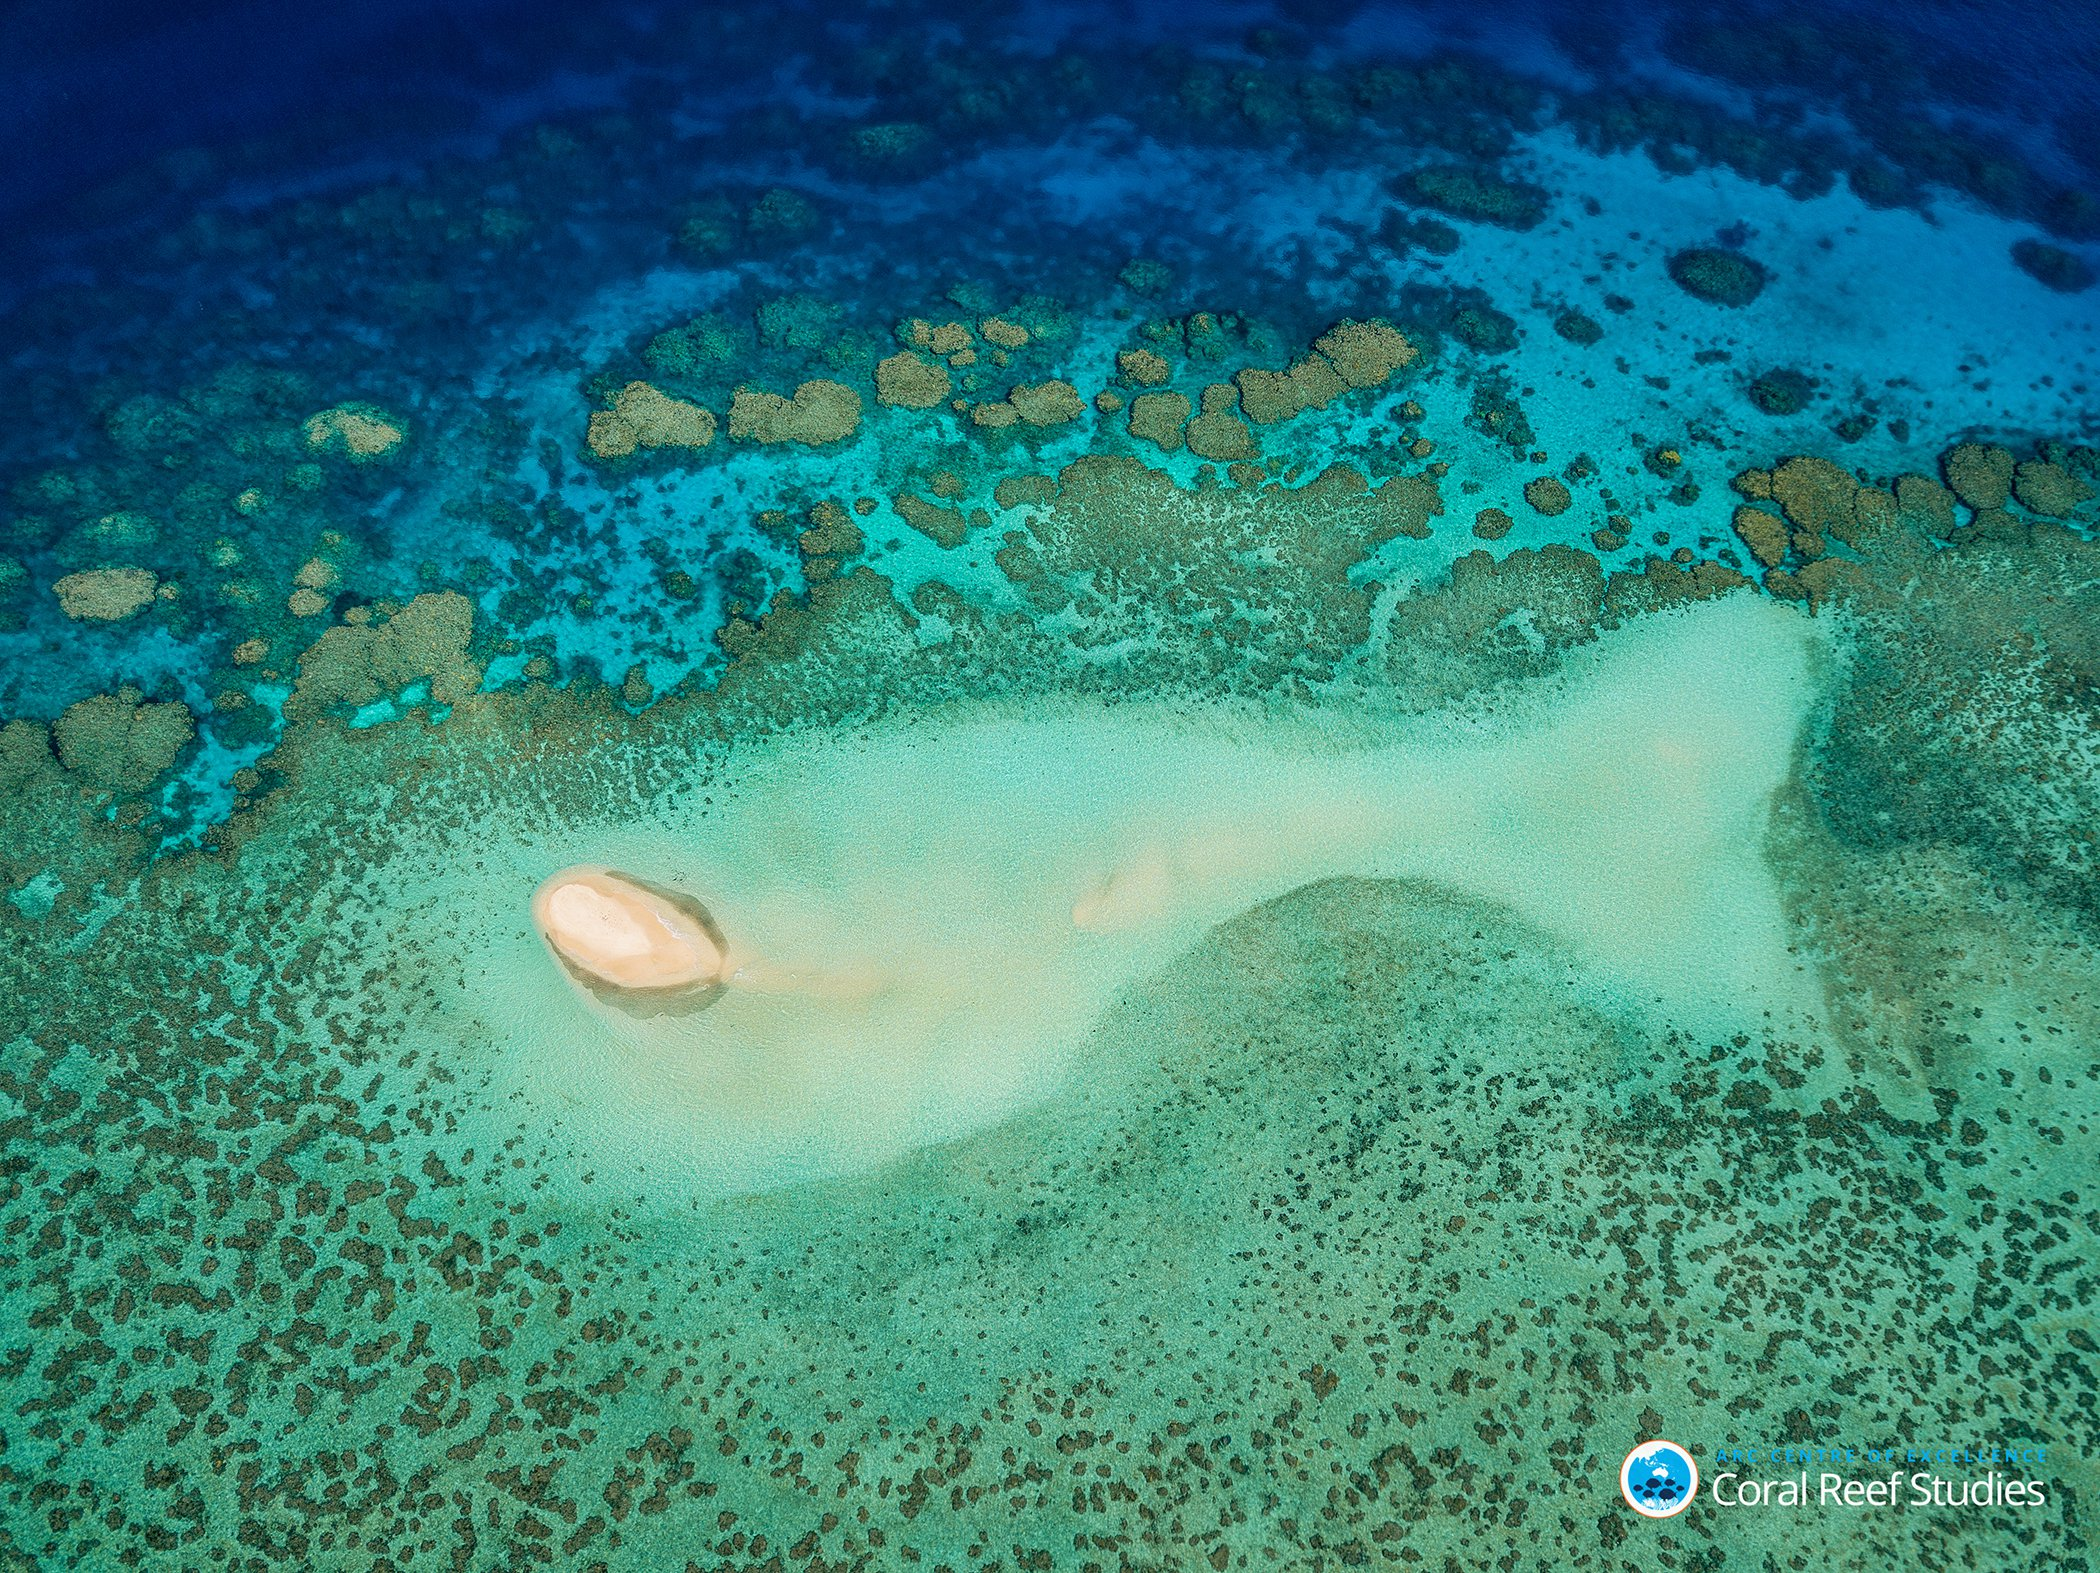 Coral-Bleaching-Great-Barrier-Reef-5.jpg